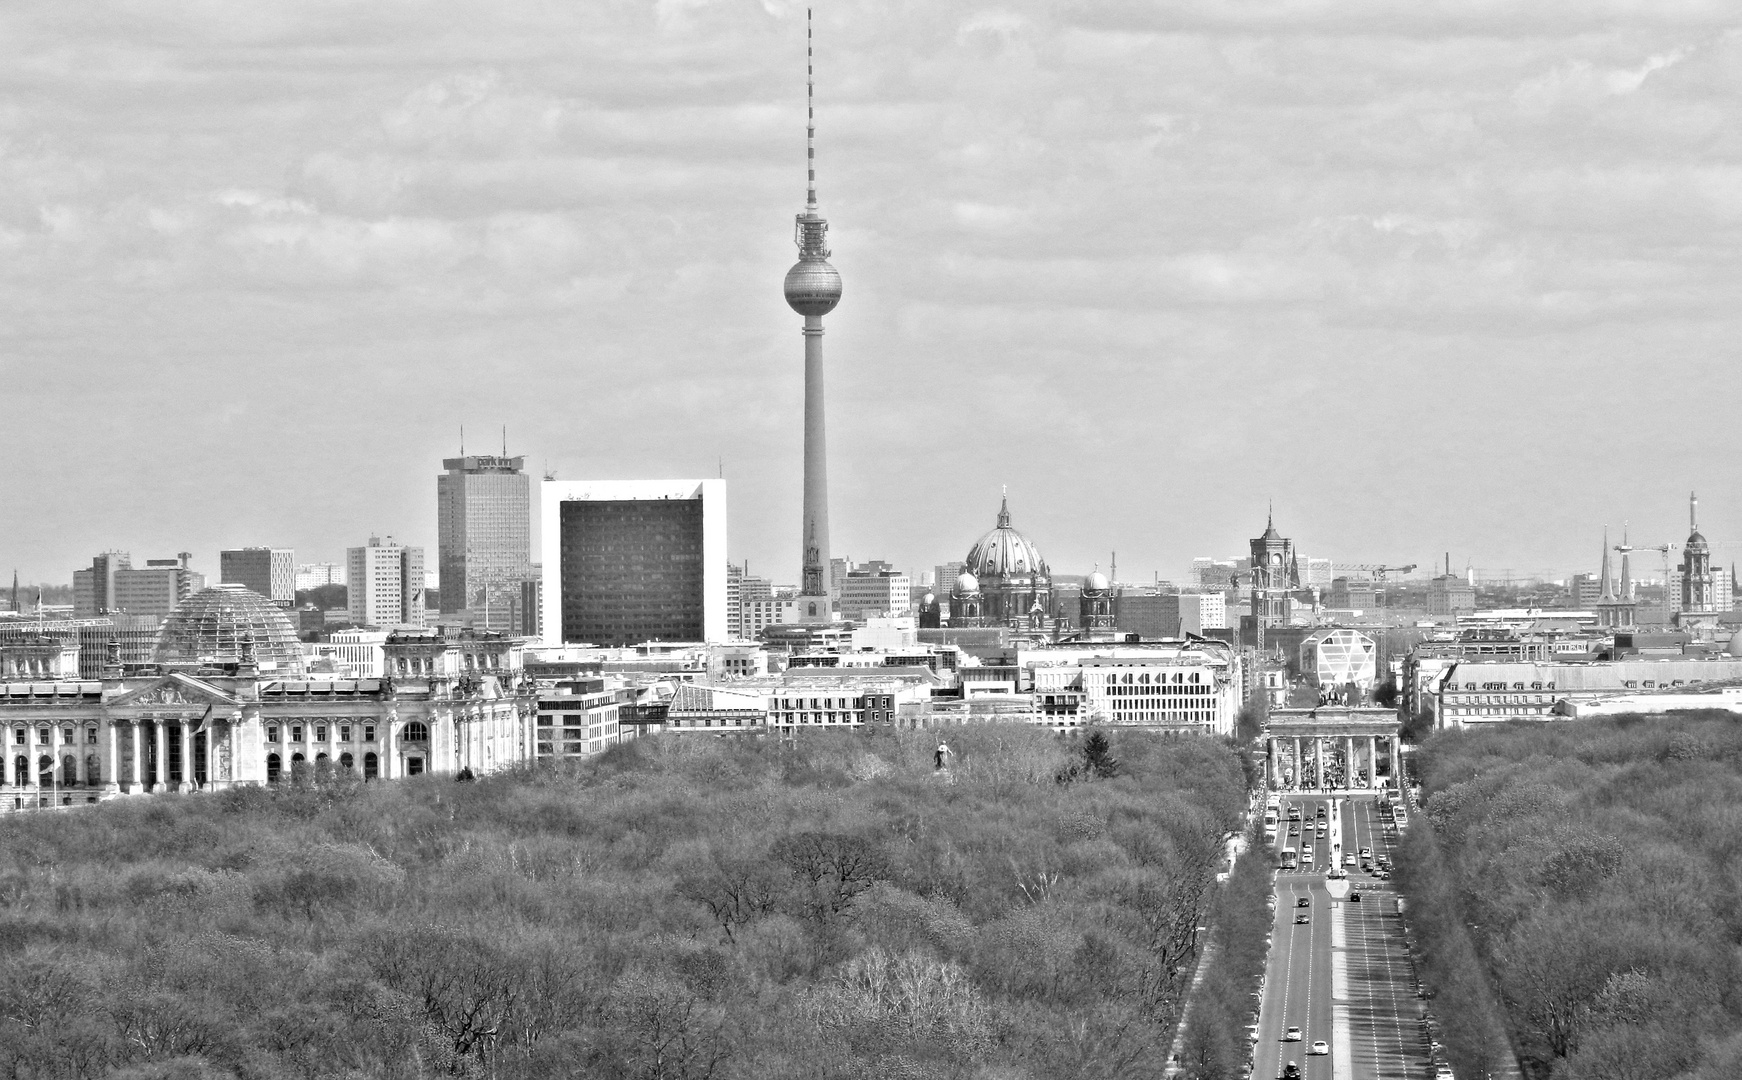 skyline berlin foto bild deutschland europe berlin bilder auf fotocommunity. Black Bedroom Furniture Sets. Home Design Ideas